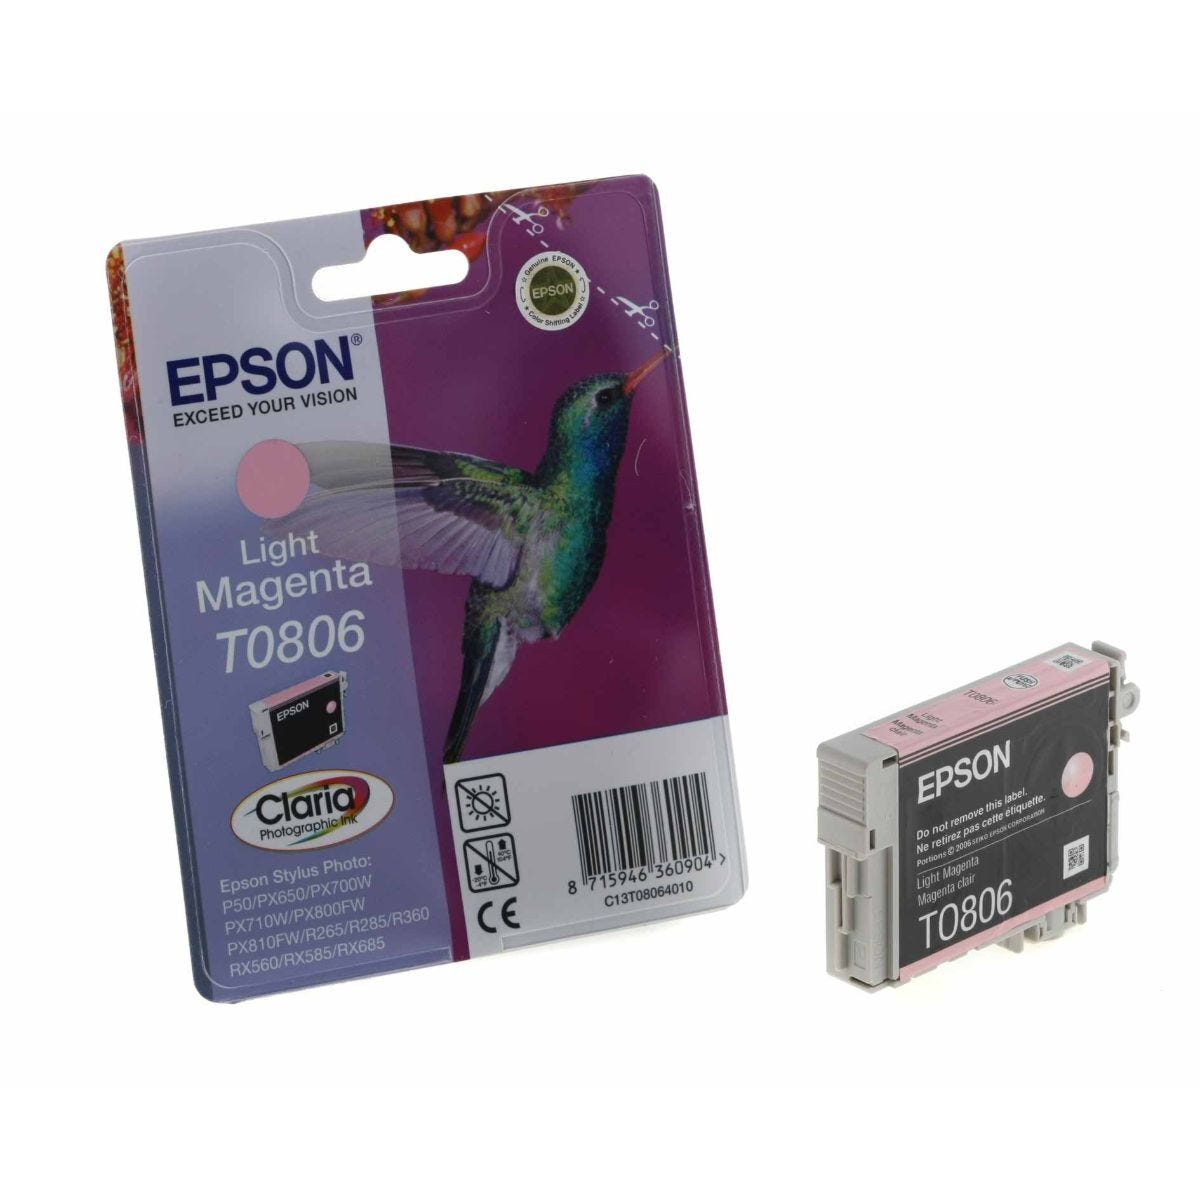 Epson T0806 Ink Cartridge 7.4ml